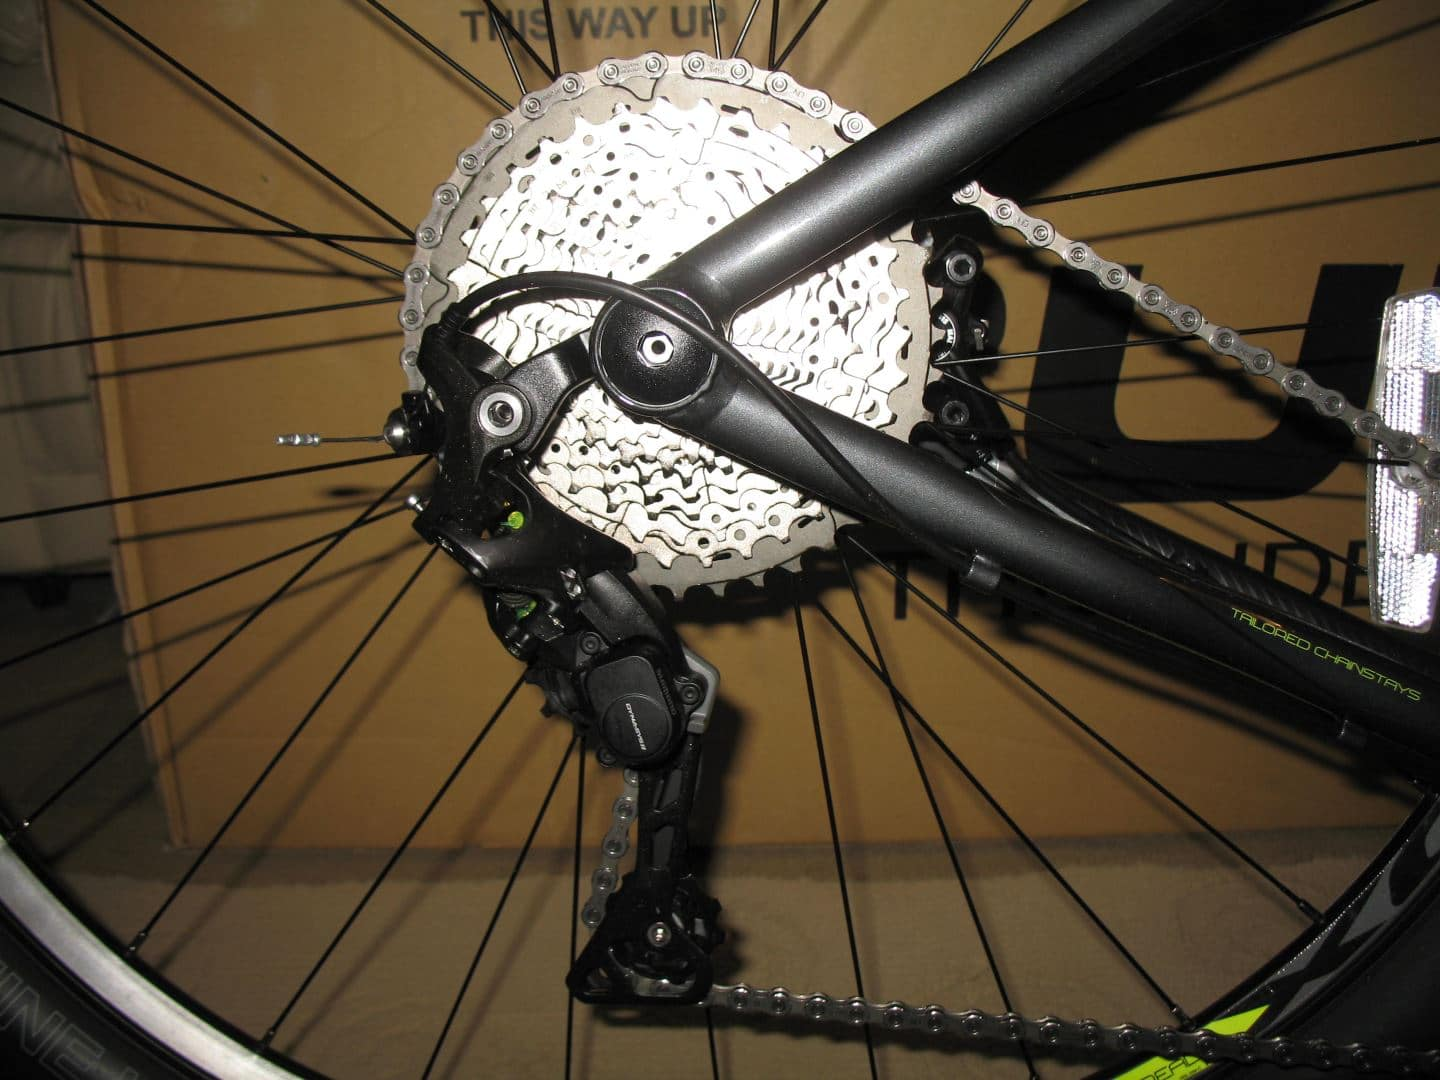 321a3a5eb8e GREAT PRICES on QUALITY BICYCLES 50+% off BULLS Bikes USA Carbon Fiber  Ultegra Road Bike - Full Suspension XT components Rockshox mountain bike -  Page 6 ...